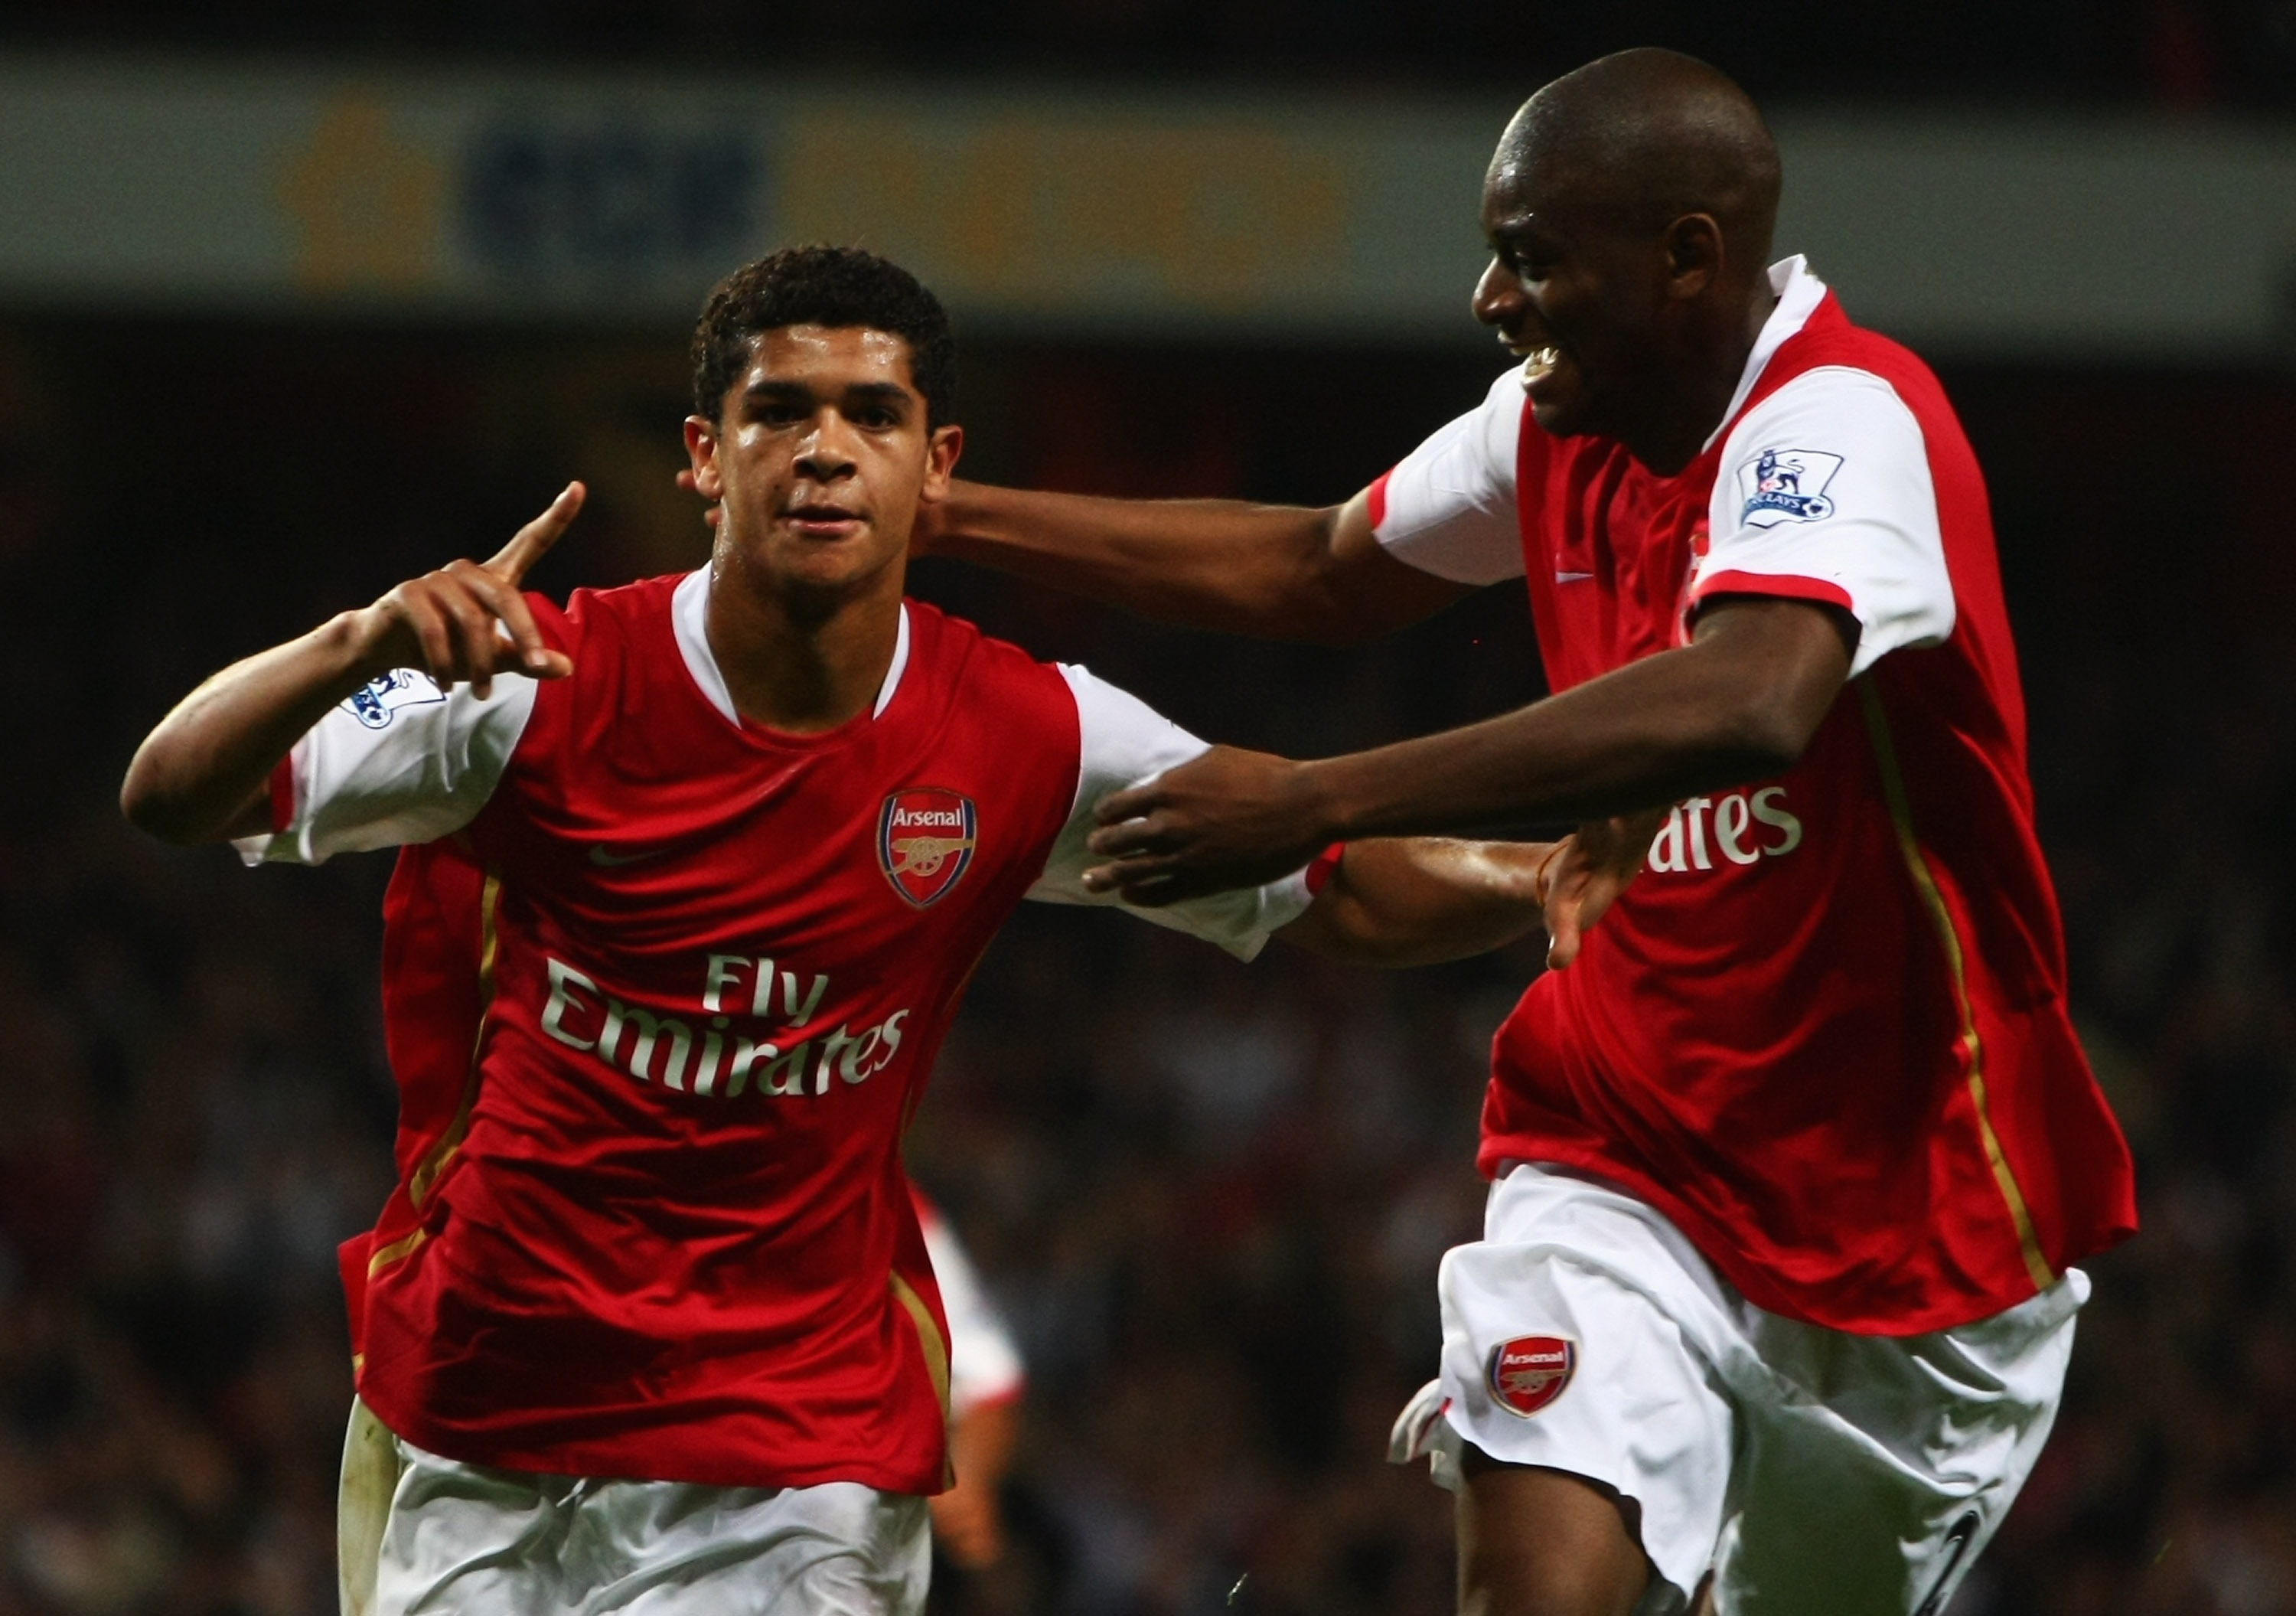 LONDON - SEPTEMBER 25:  Denilson of Arsenal celebrates with Abou Diaby as he scores their second goal during the Carling Cup Third Round match between Arsenal and Newcastle United at the Emirates Stadium on September 25, 2007 in London, England.  (Photo b